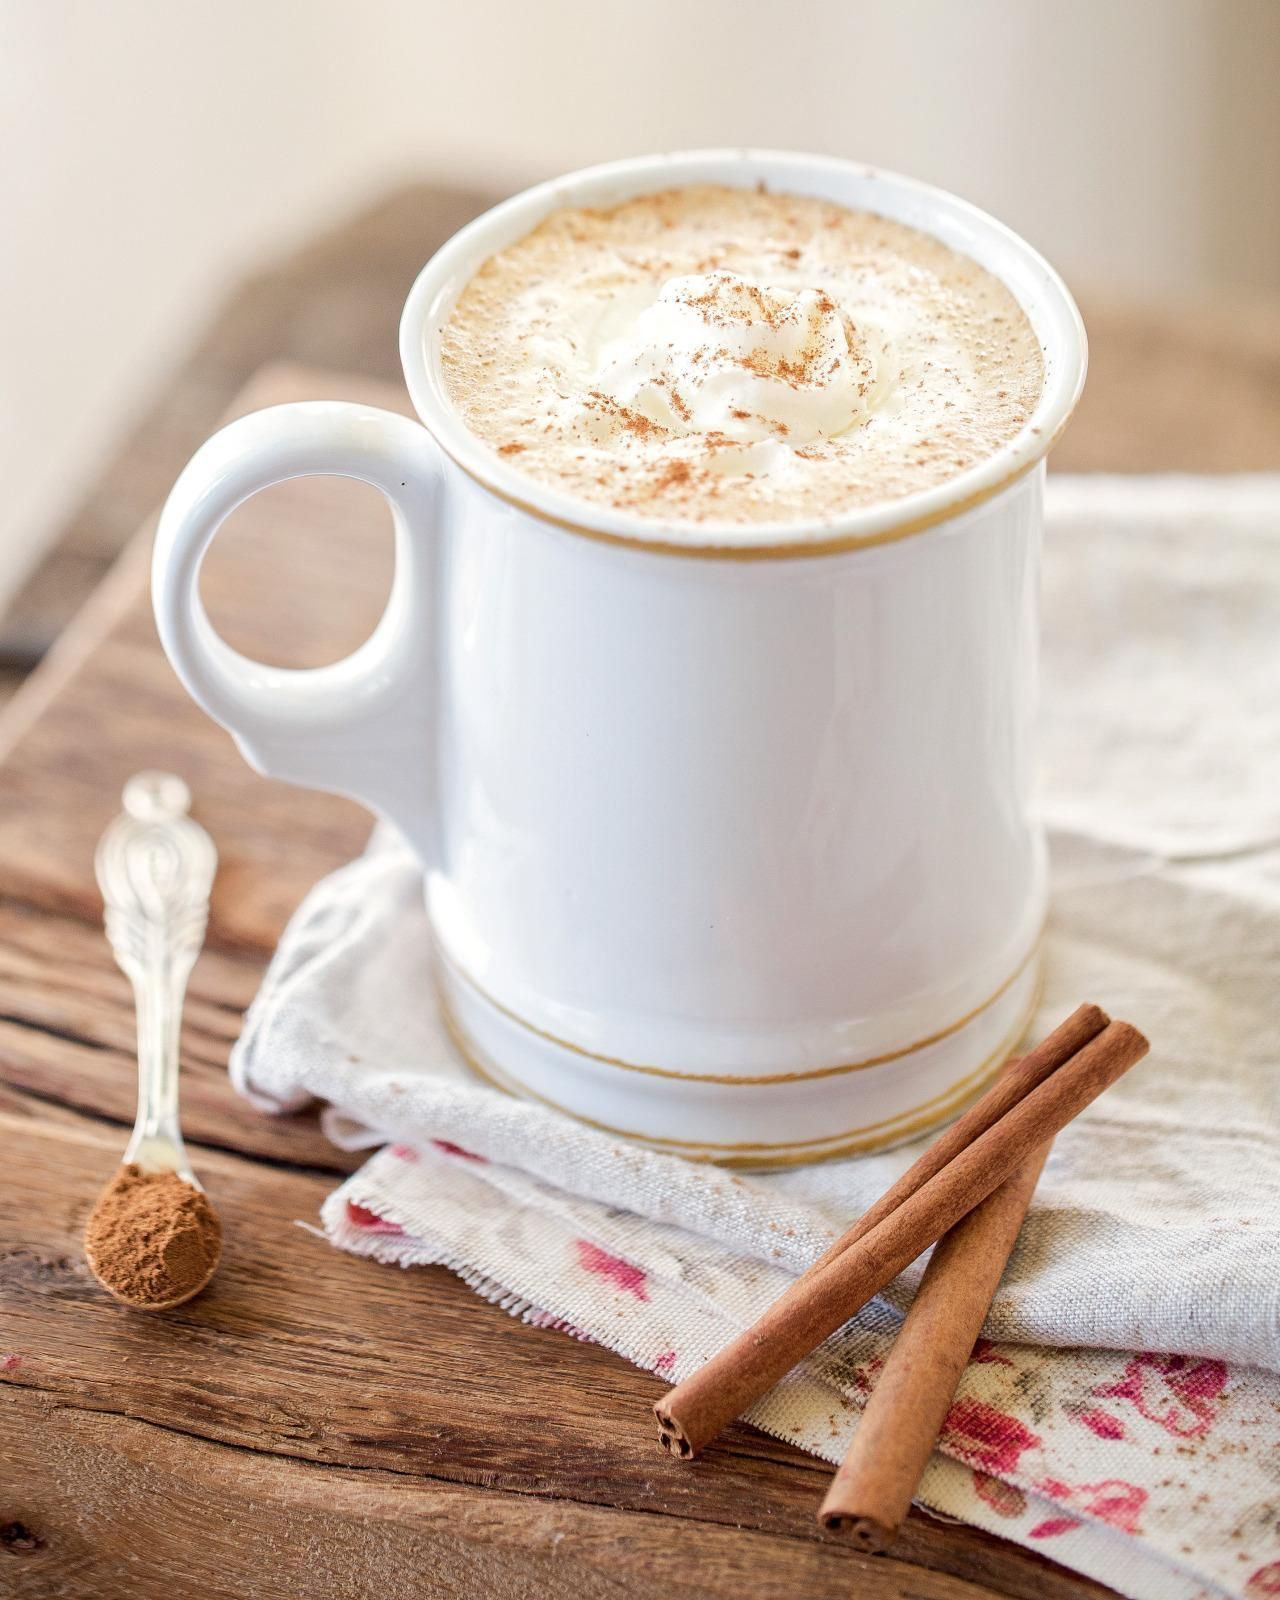 How To Make Your Own Pumpkin Spice Latte (Without The